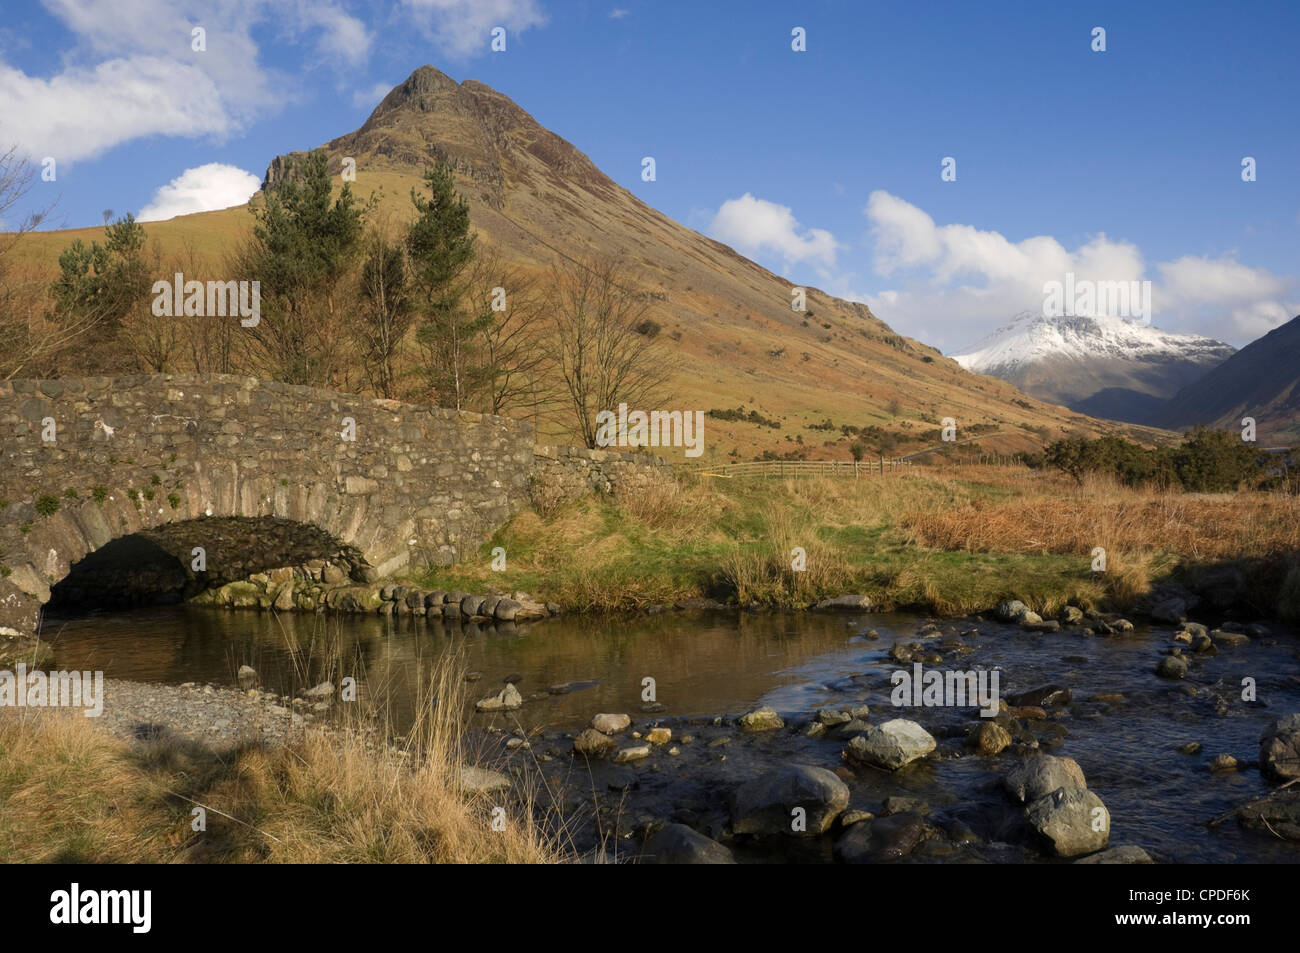 Yewbarrow 2058 ft, from Over Beck Bridge, Wasdale, Lake District National Park, Cumbria, England, United Kingdom, - Stock Image